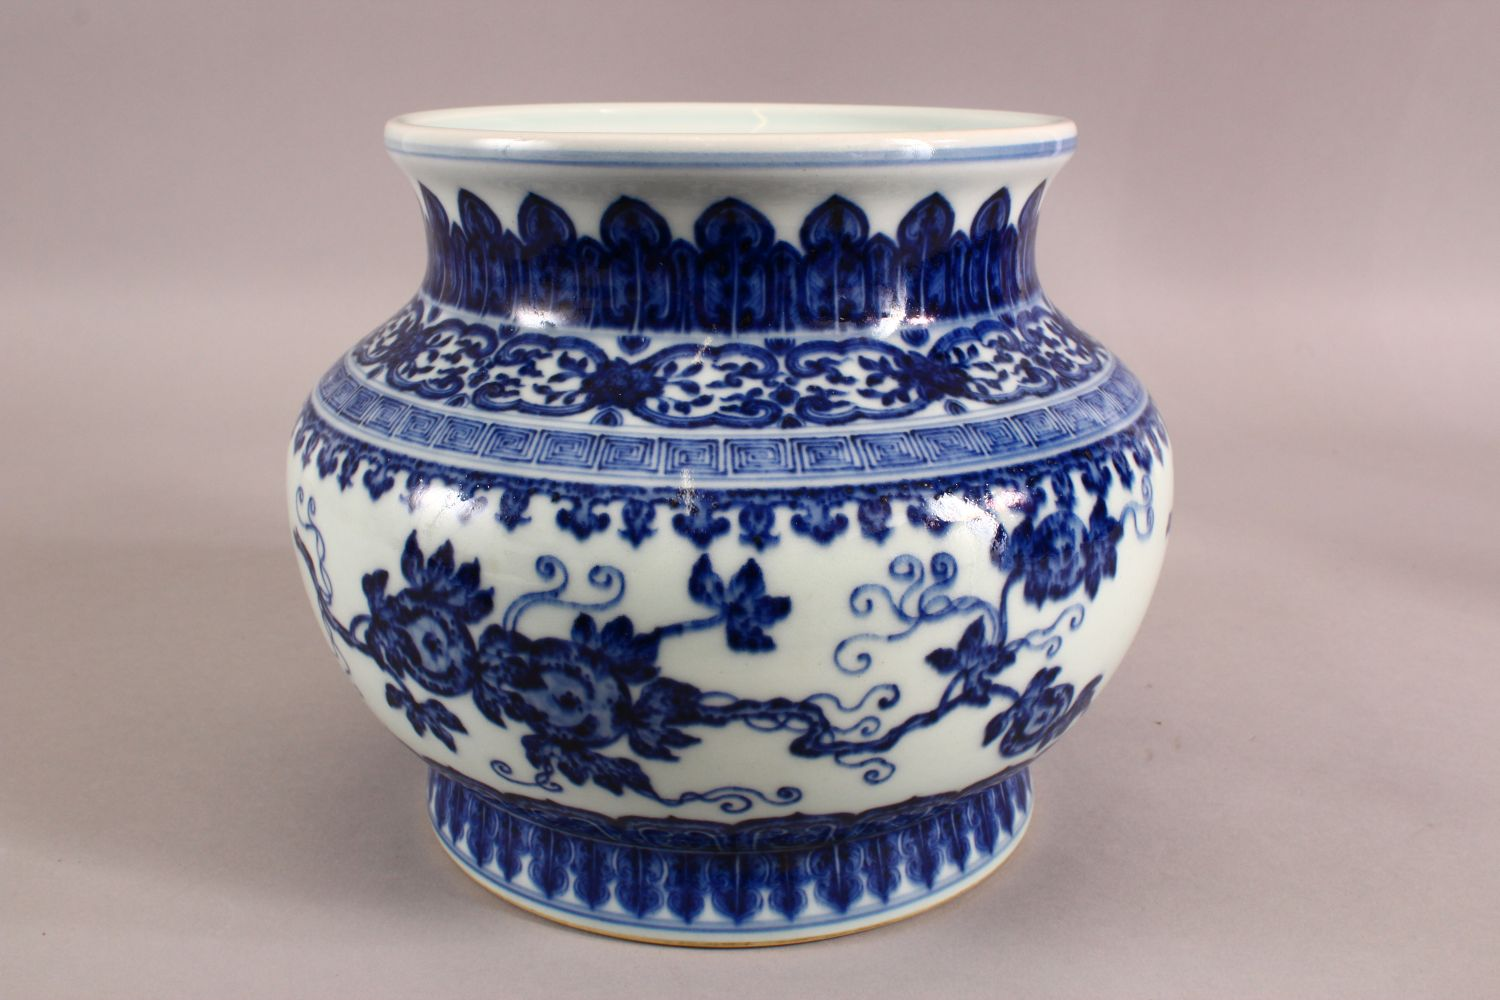 A CHINESE BLUE AND WHITE PORCELAIN PLANTER / VASE, 19cm high, approx 24cm wide. - Image 2 of 6